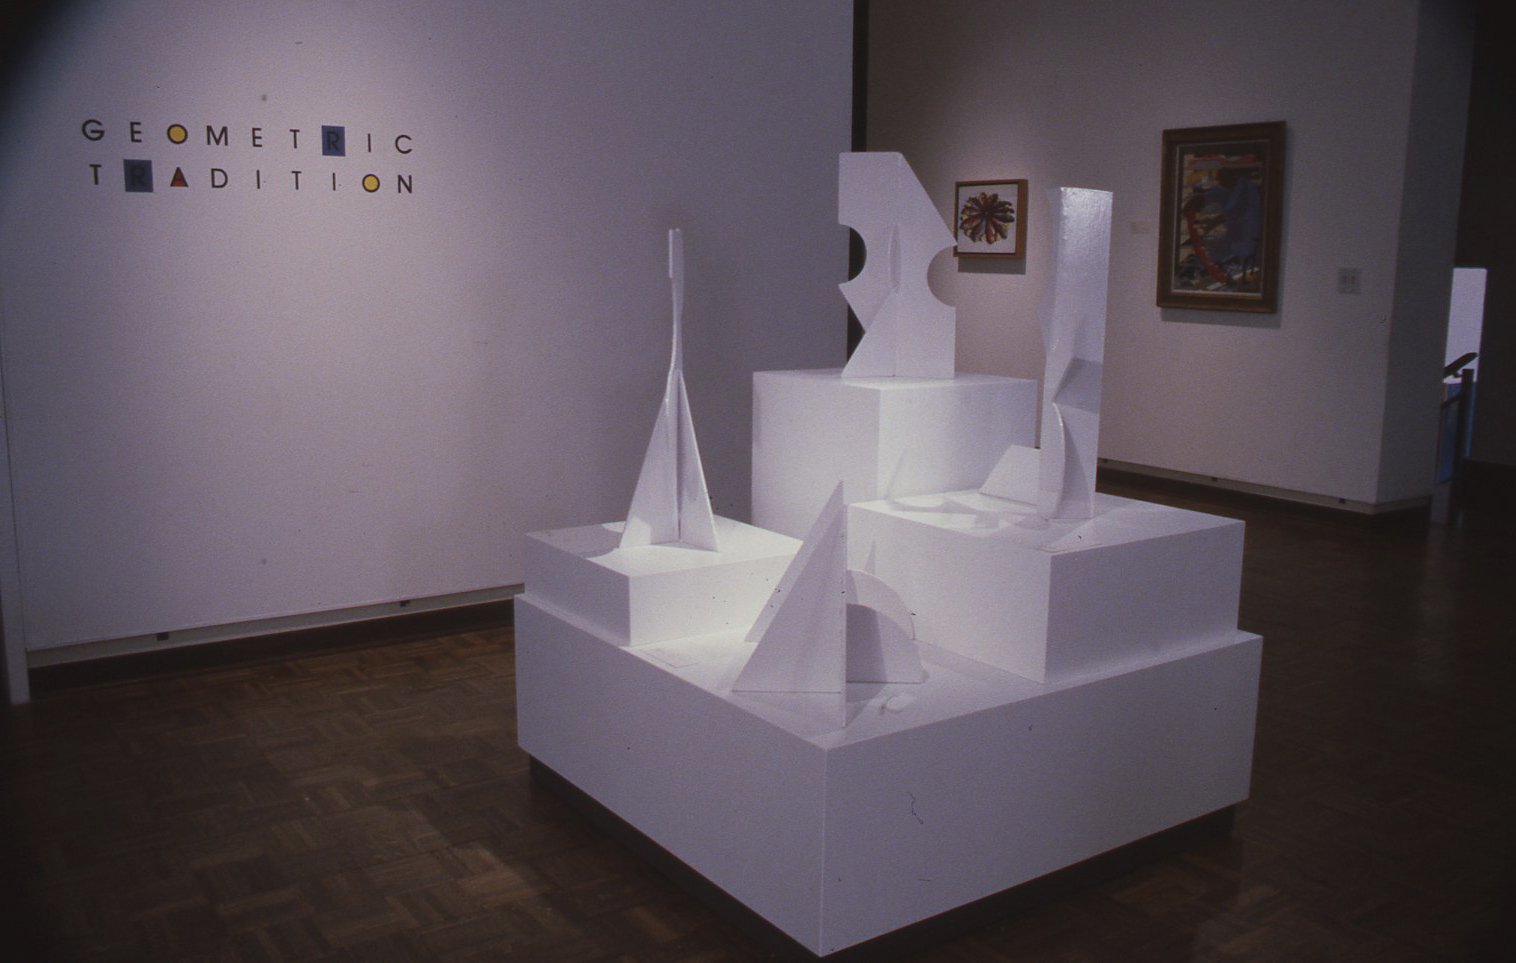 Installation view of Betty Gold Kaikoo II Installation and Exhibition of Maquettes, April 22, 1986 - May 25, 1986 at the Museum. Image from the Birmingham Museum of Art exhibition archive.